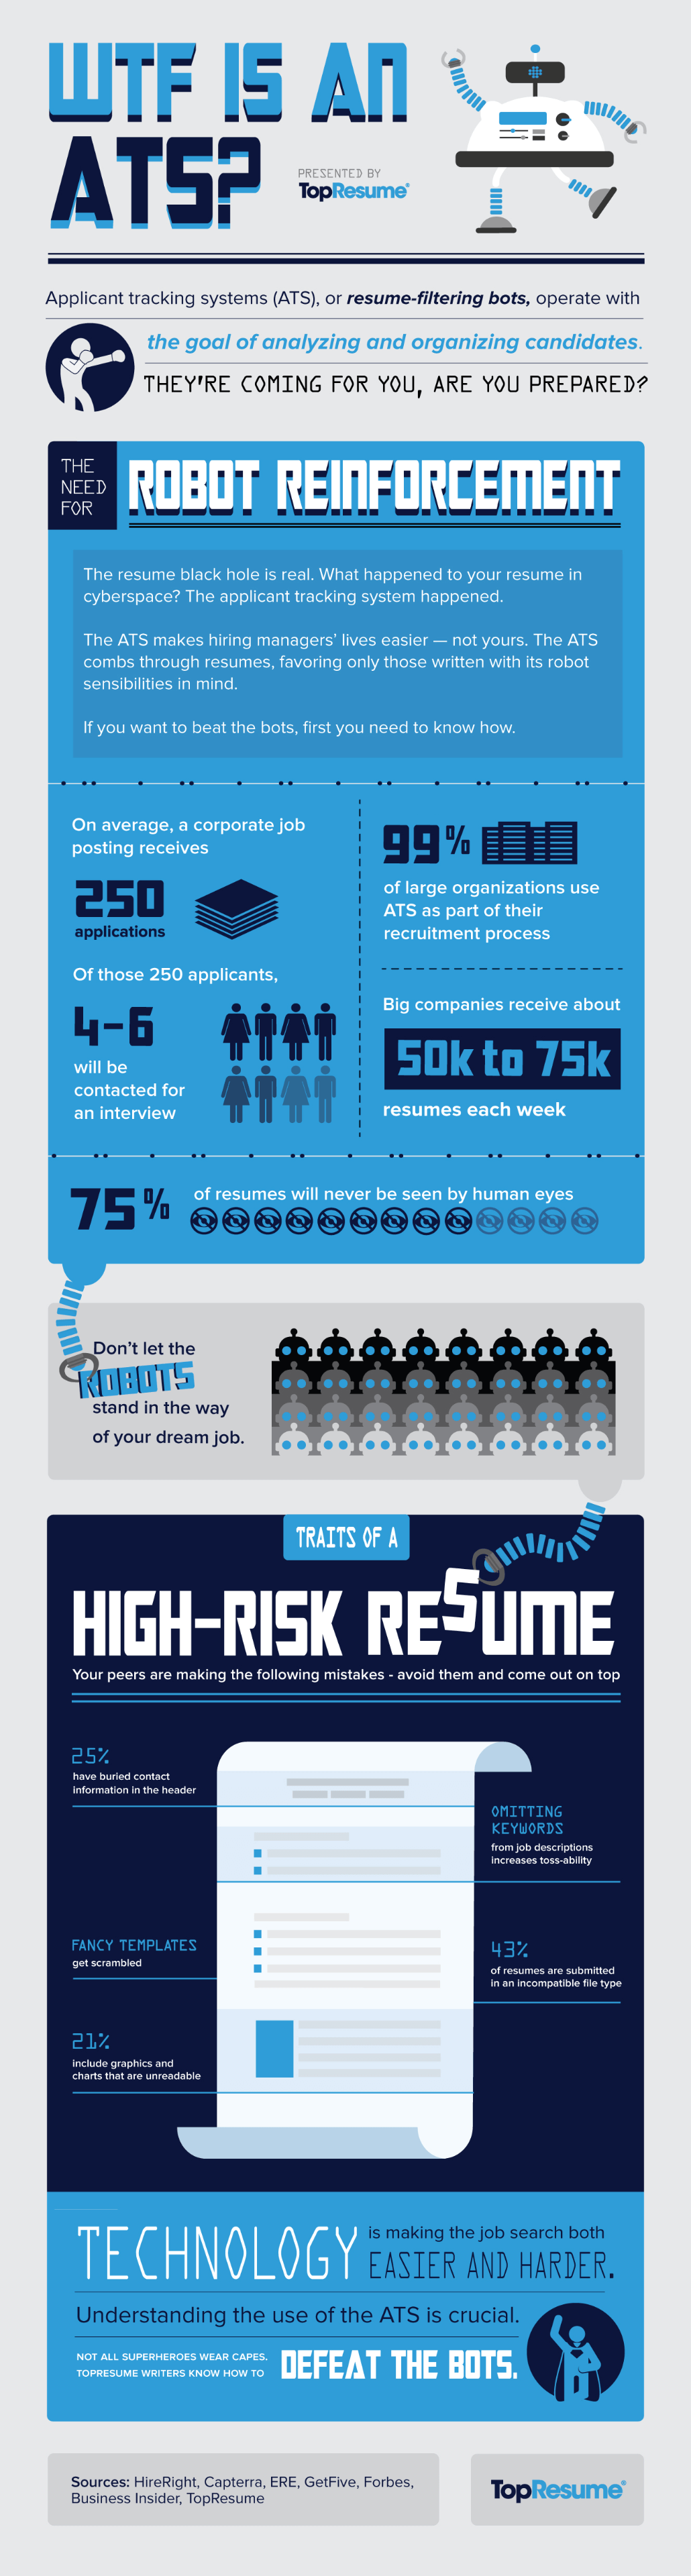 TopResume Infographic How to Write an ATS Resume